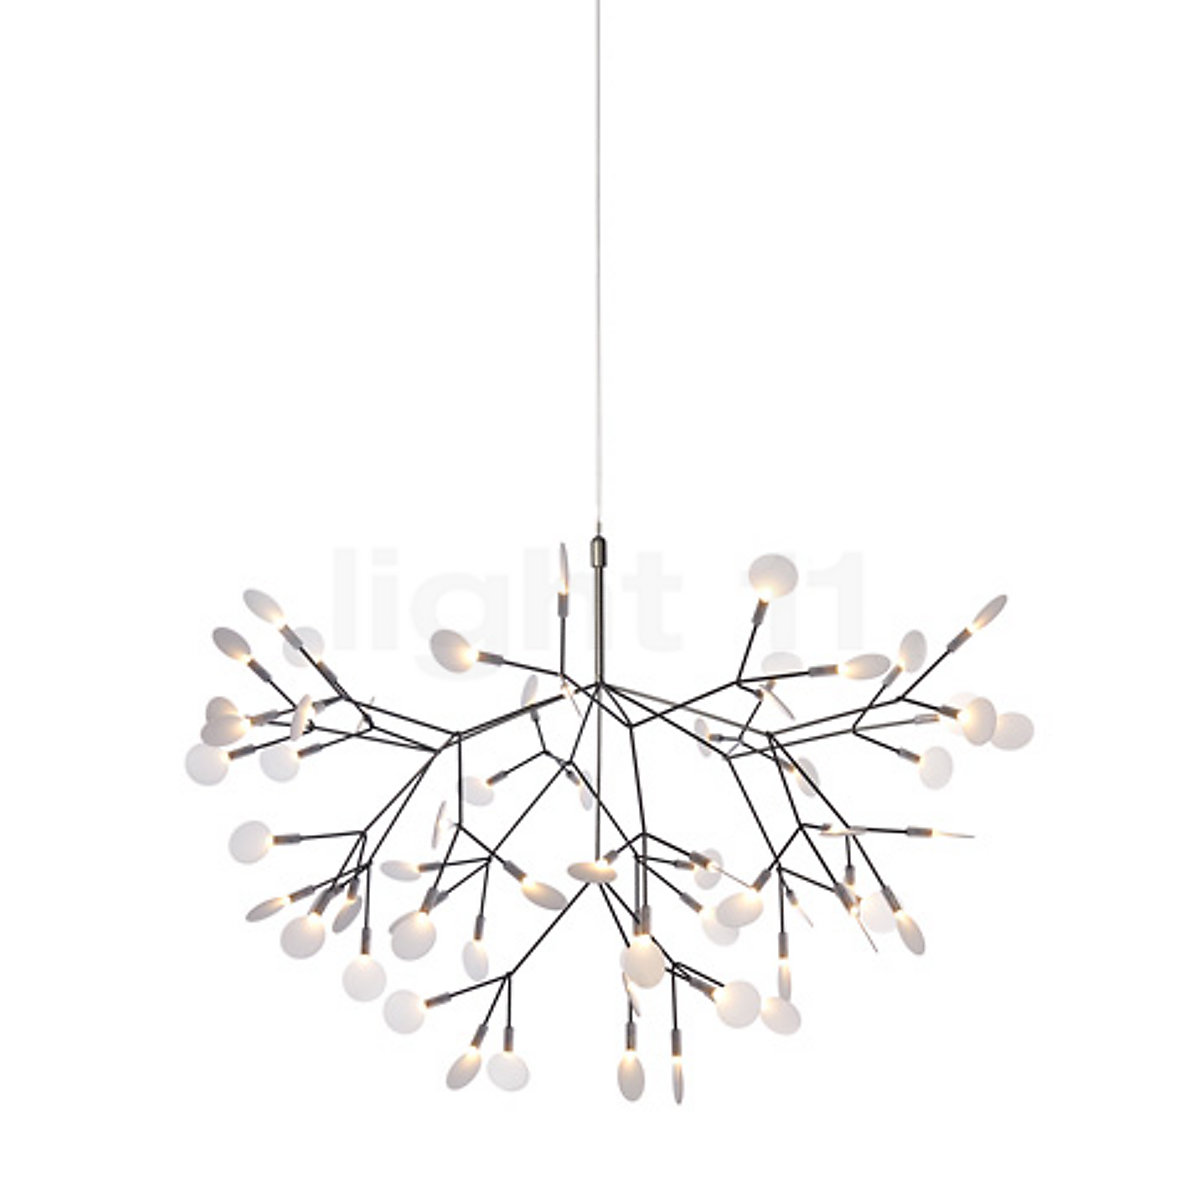 reputable site b8042 66ab6 Buy Moooi Heracleum II Pendant light at light11.eu